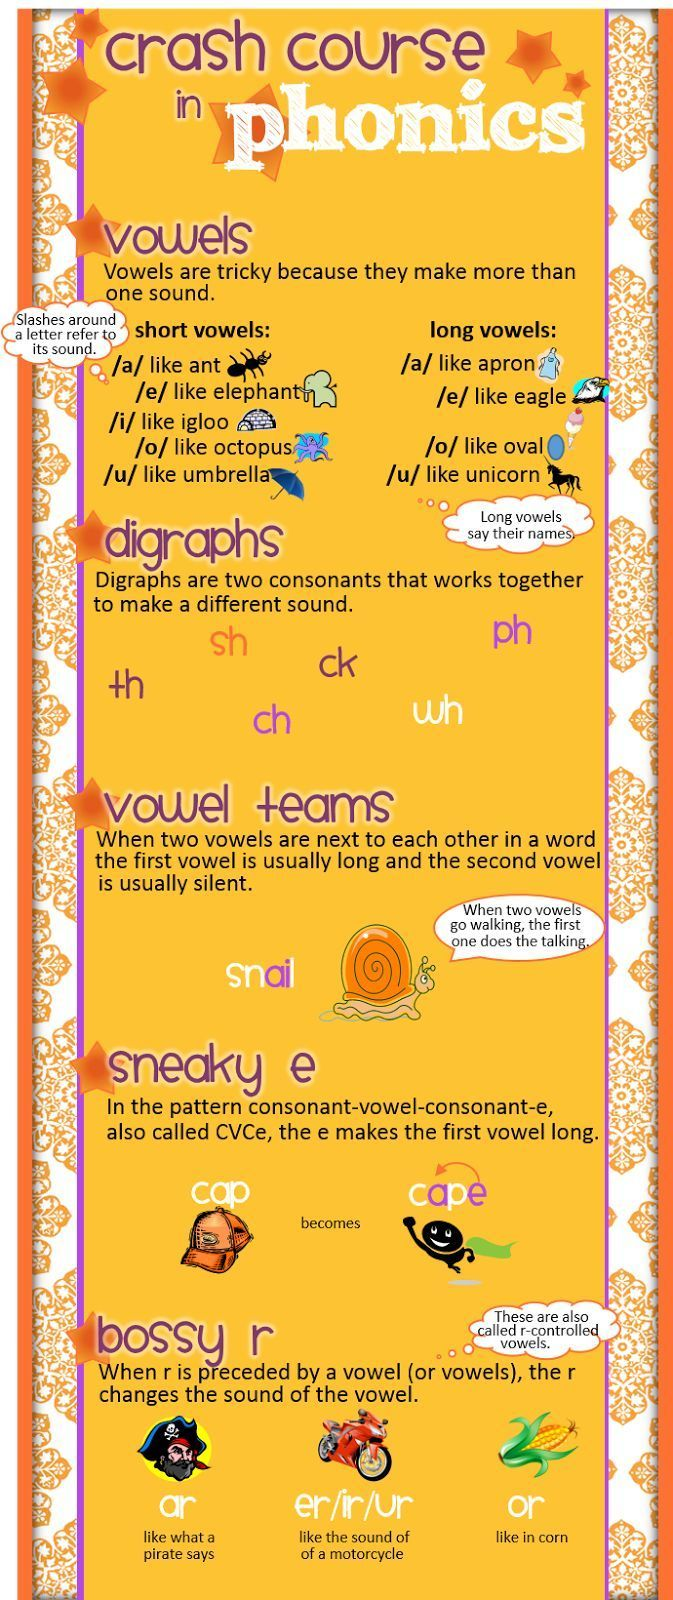 Crash course in phonics, fill in the gaps left by your teacher-prep program.